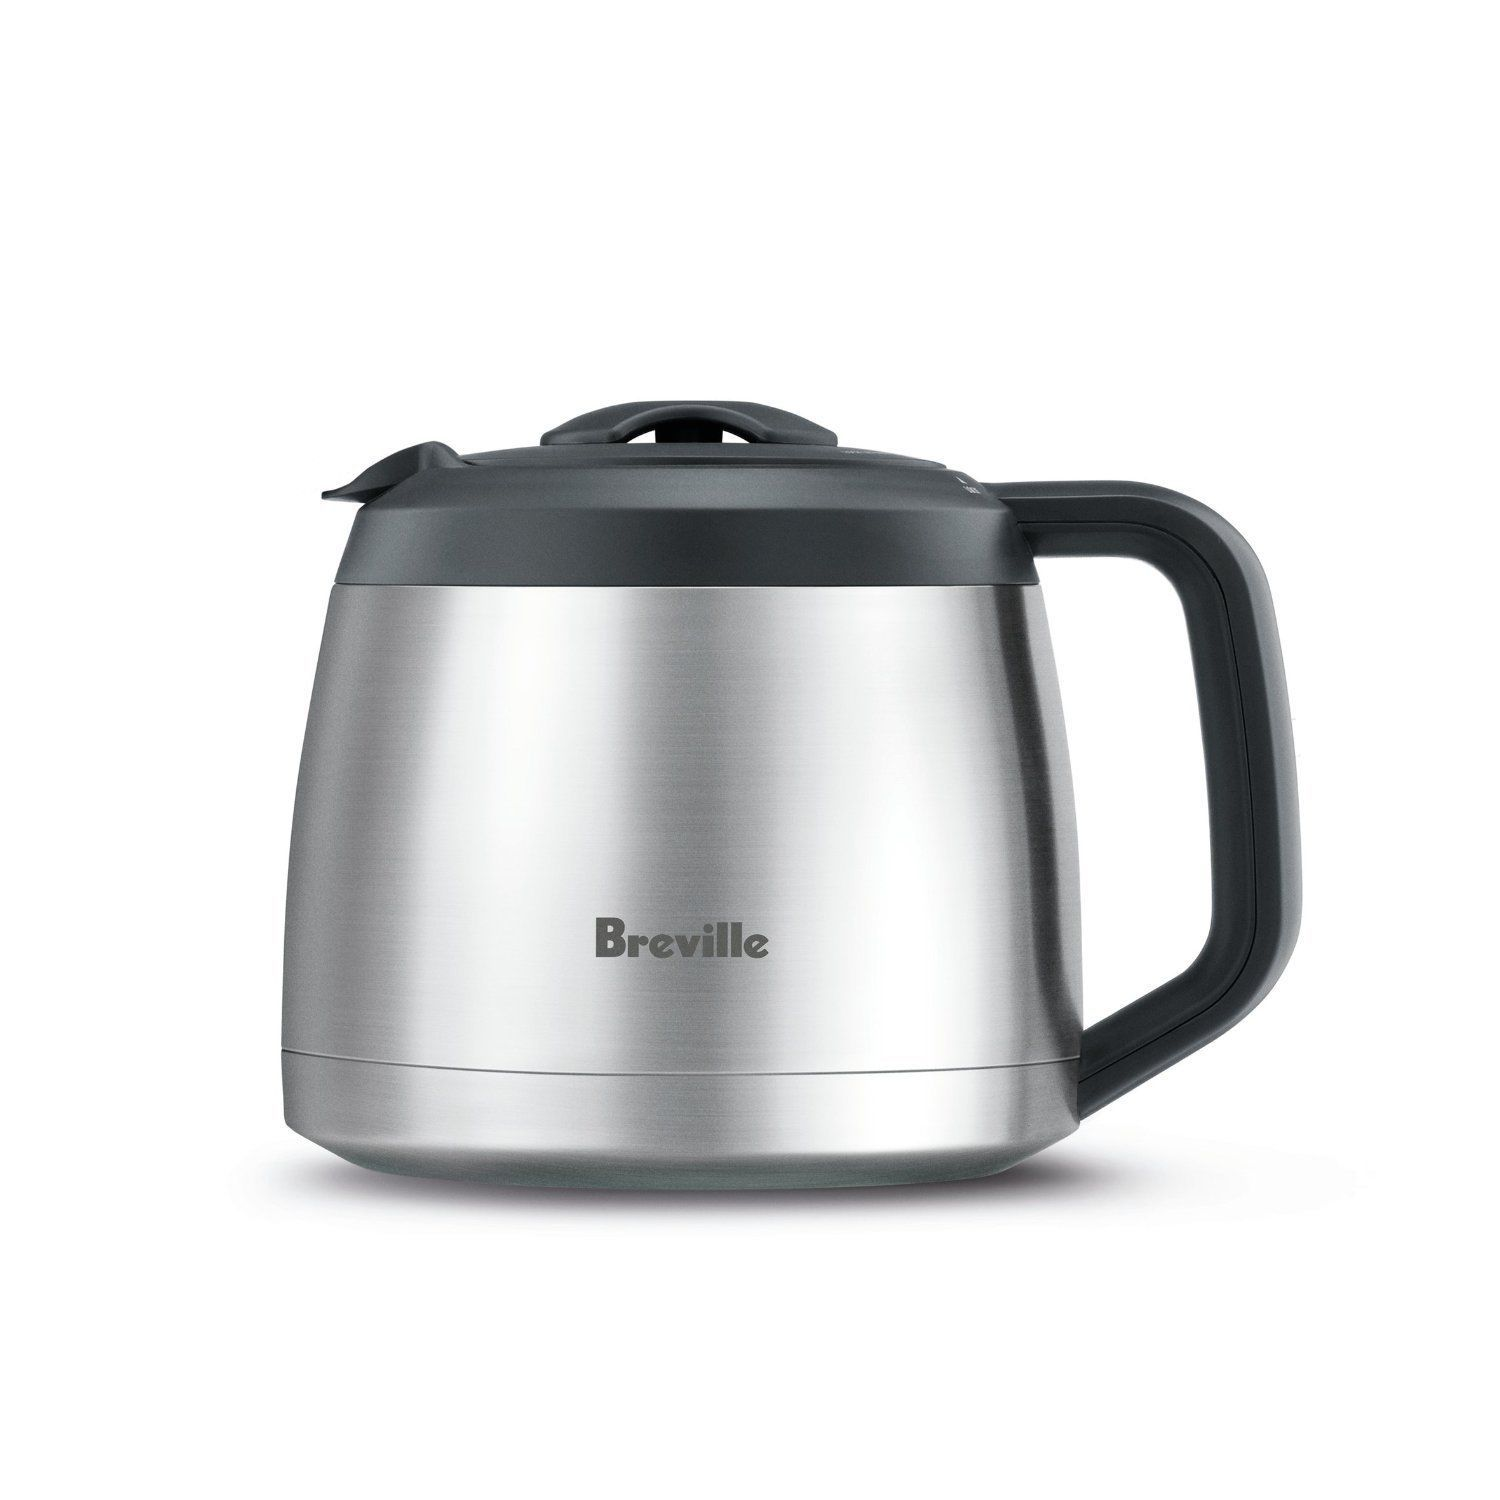 Breville Coffee Maker Coupons : Breville BDC650BSS The Grind Control Drip Coffee Maker - Coffee Makers (Automatic)